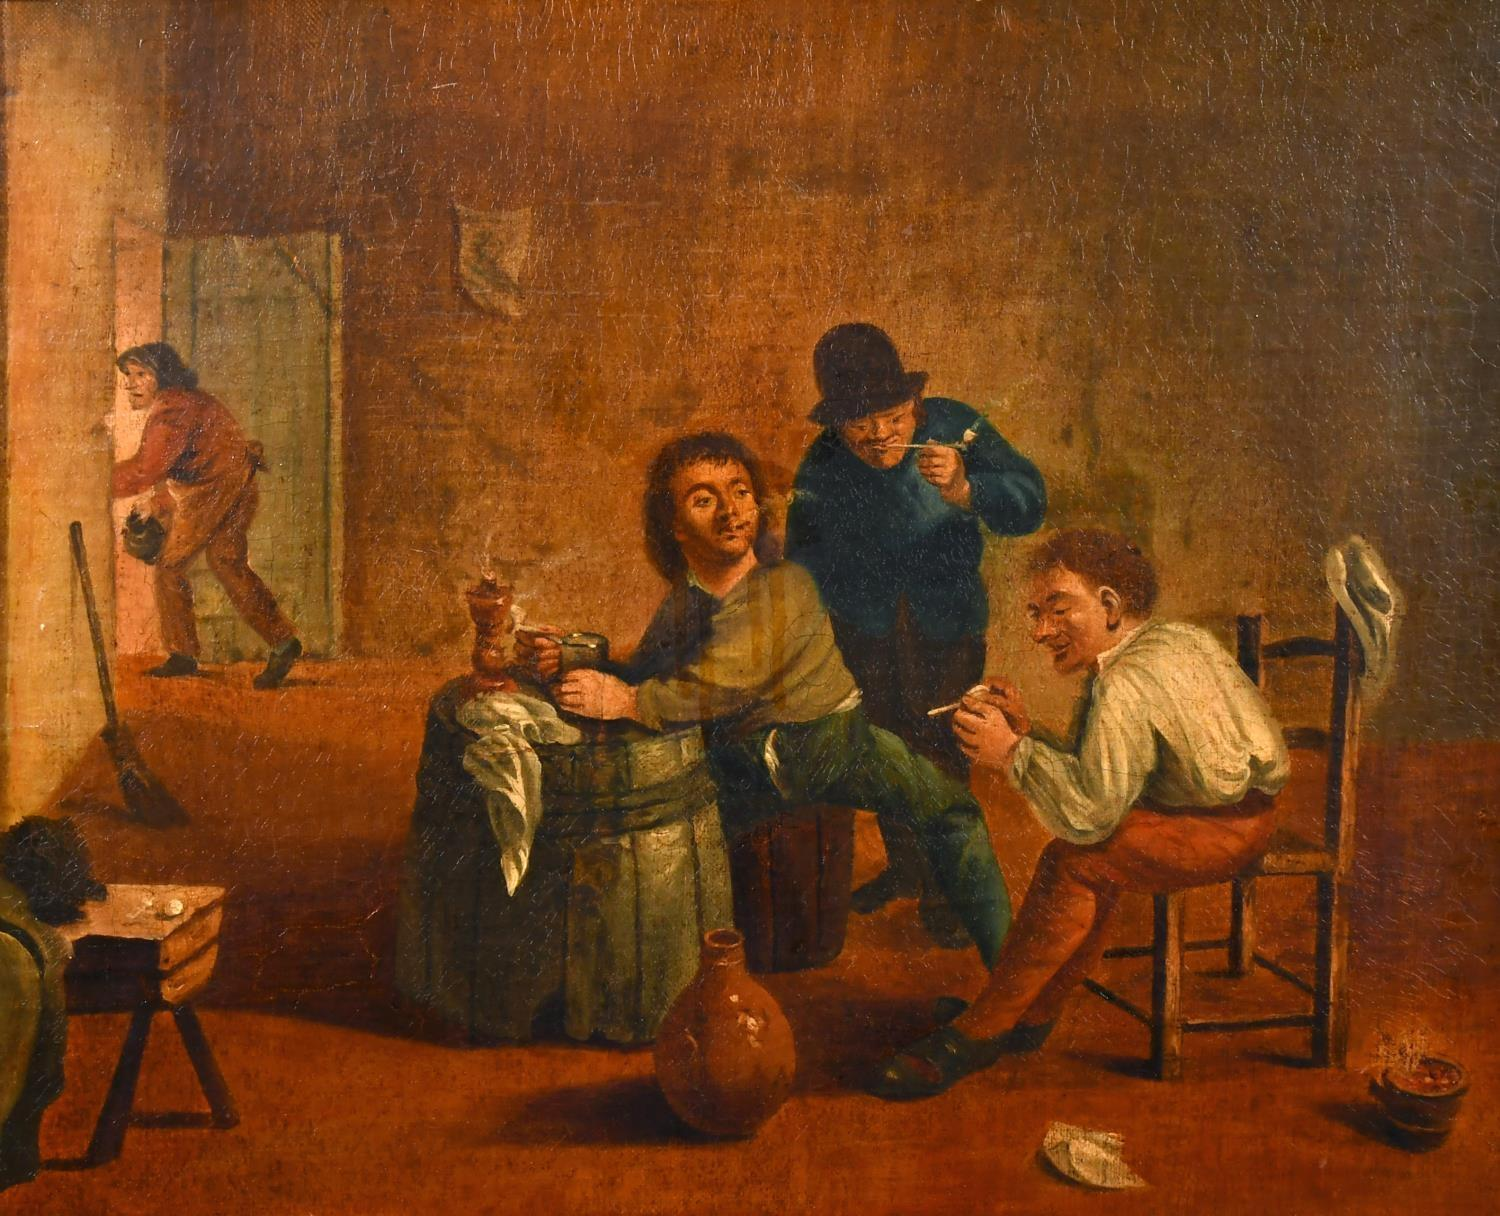 17th Century Dutch Old Master Oil Painting - Tavern Interior Figures Drinking